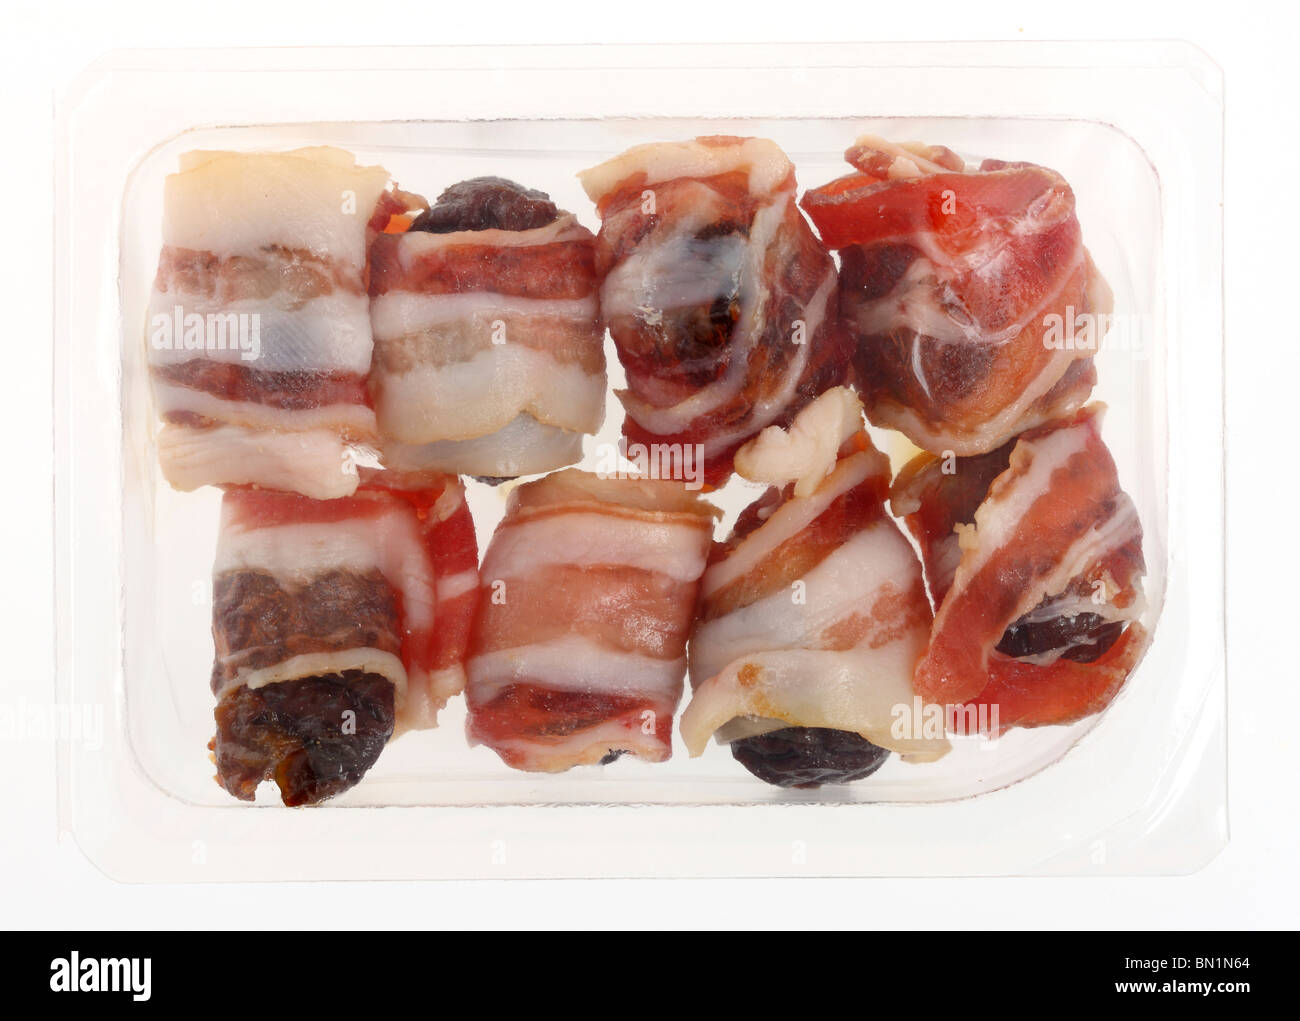 Dates wrapped in bacon, in a plastic box, convenience food from a supermarket. - Stock Image